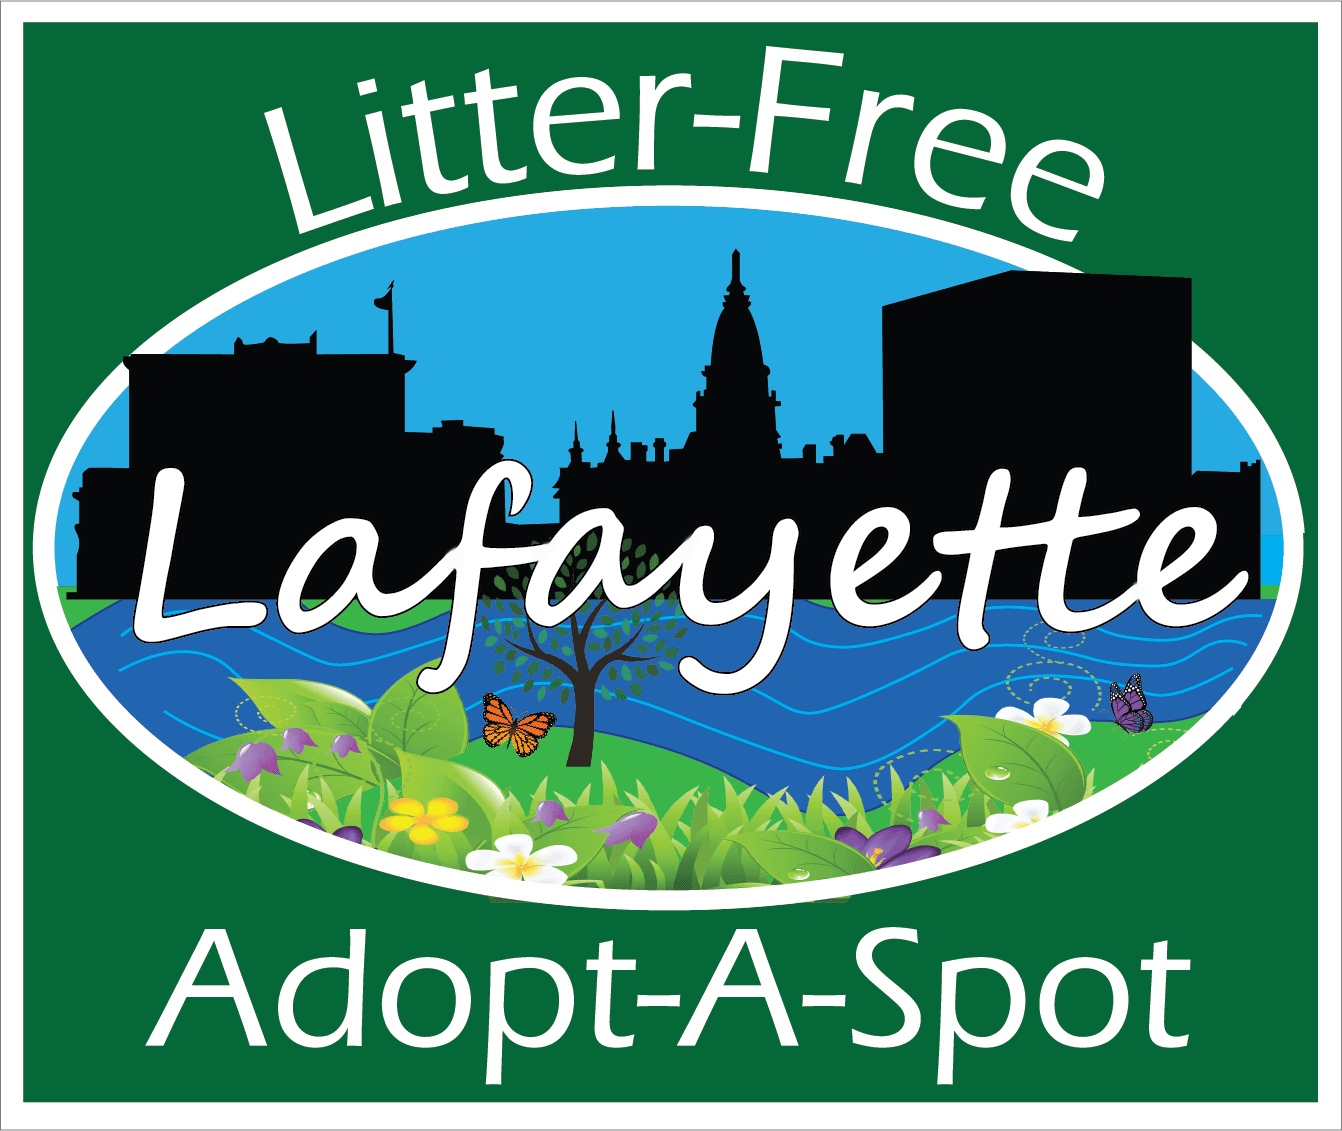 Litter Free Lafayette Adopt-A-Spot sign - Eras Medium ITC